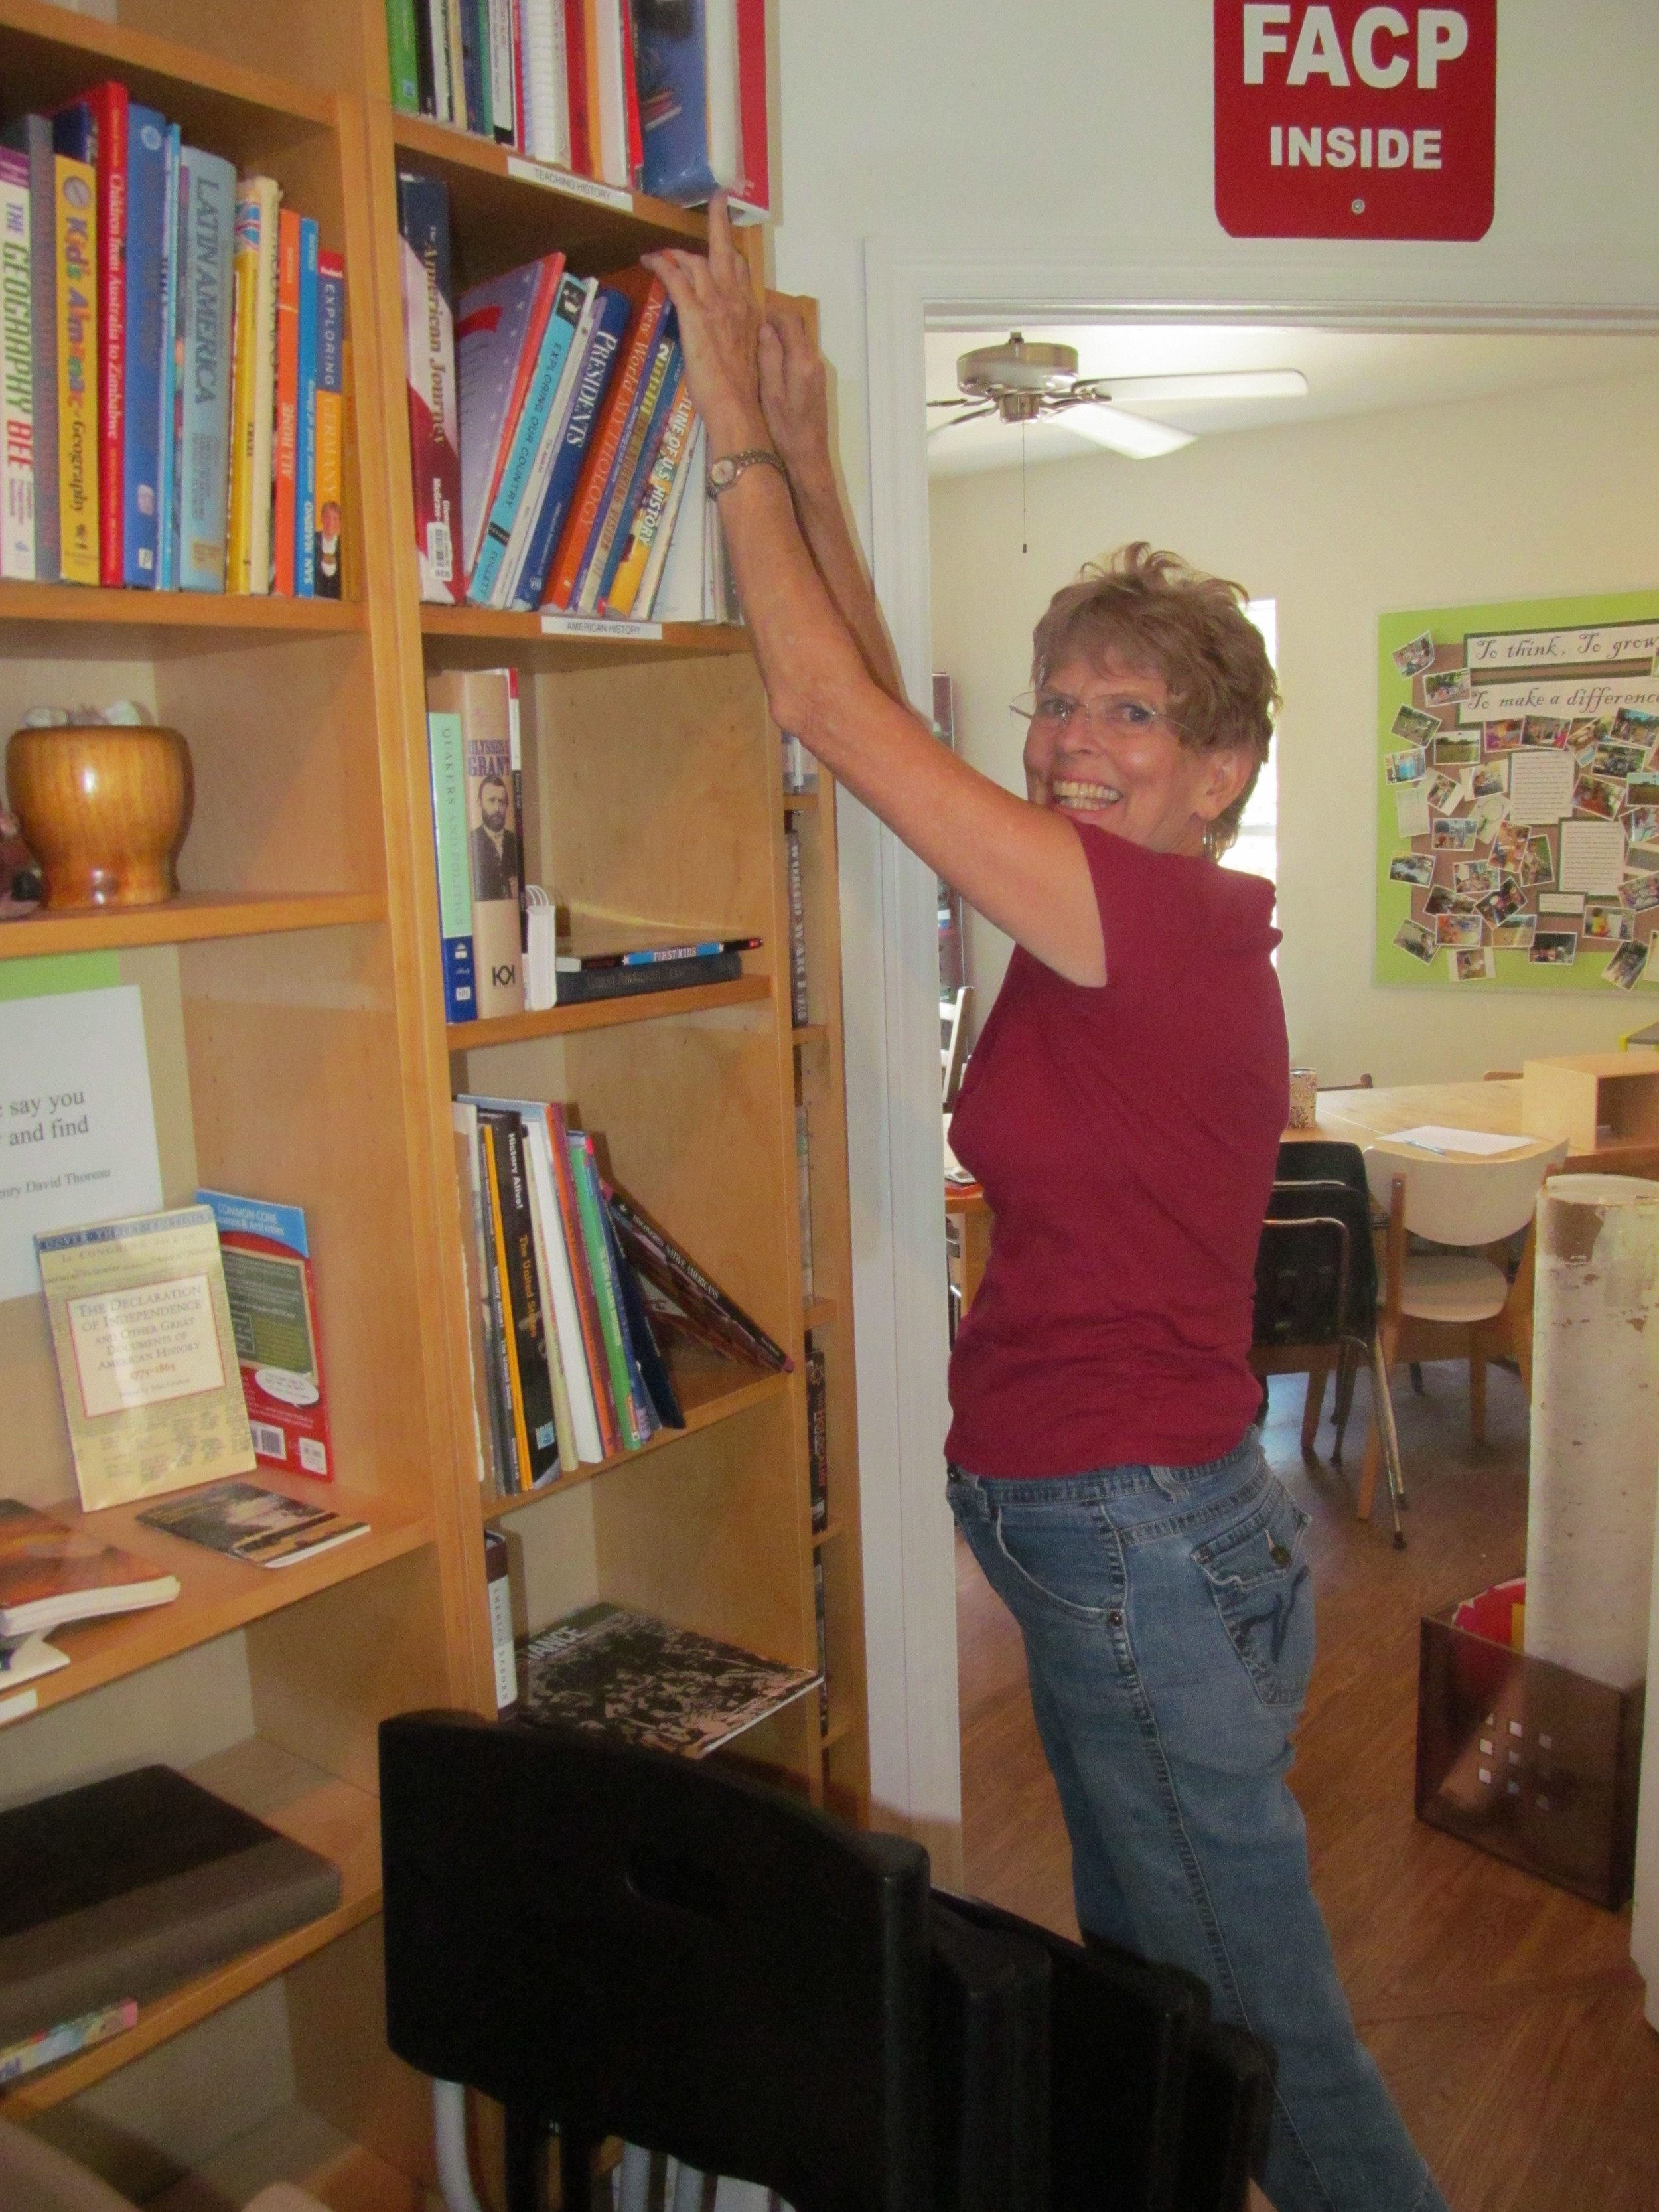 Dr. Barbara Carson, Community advisor, helps with shelving resources.